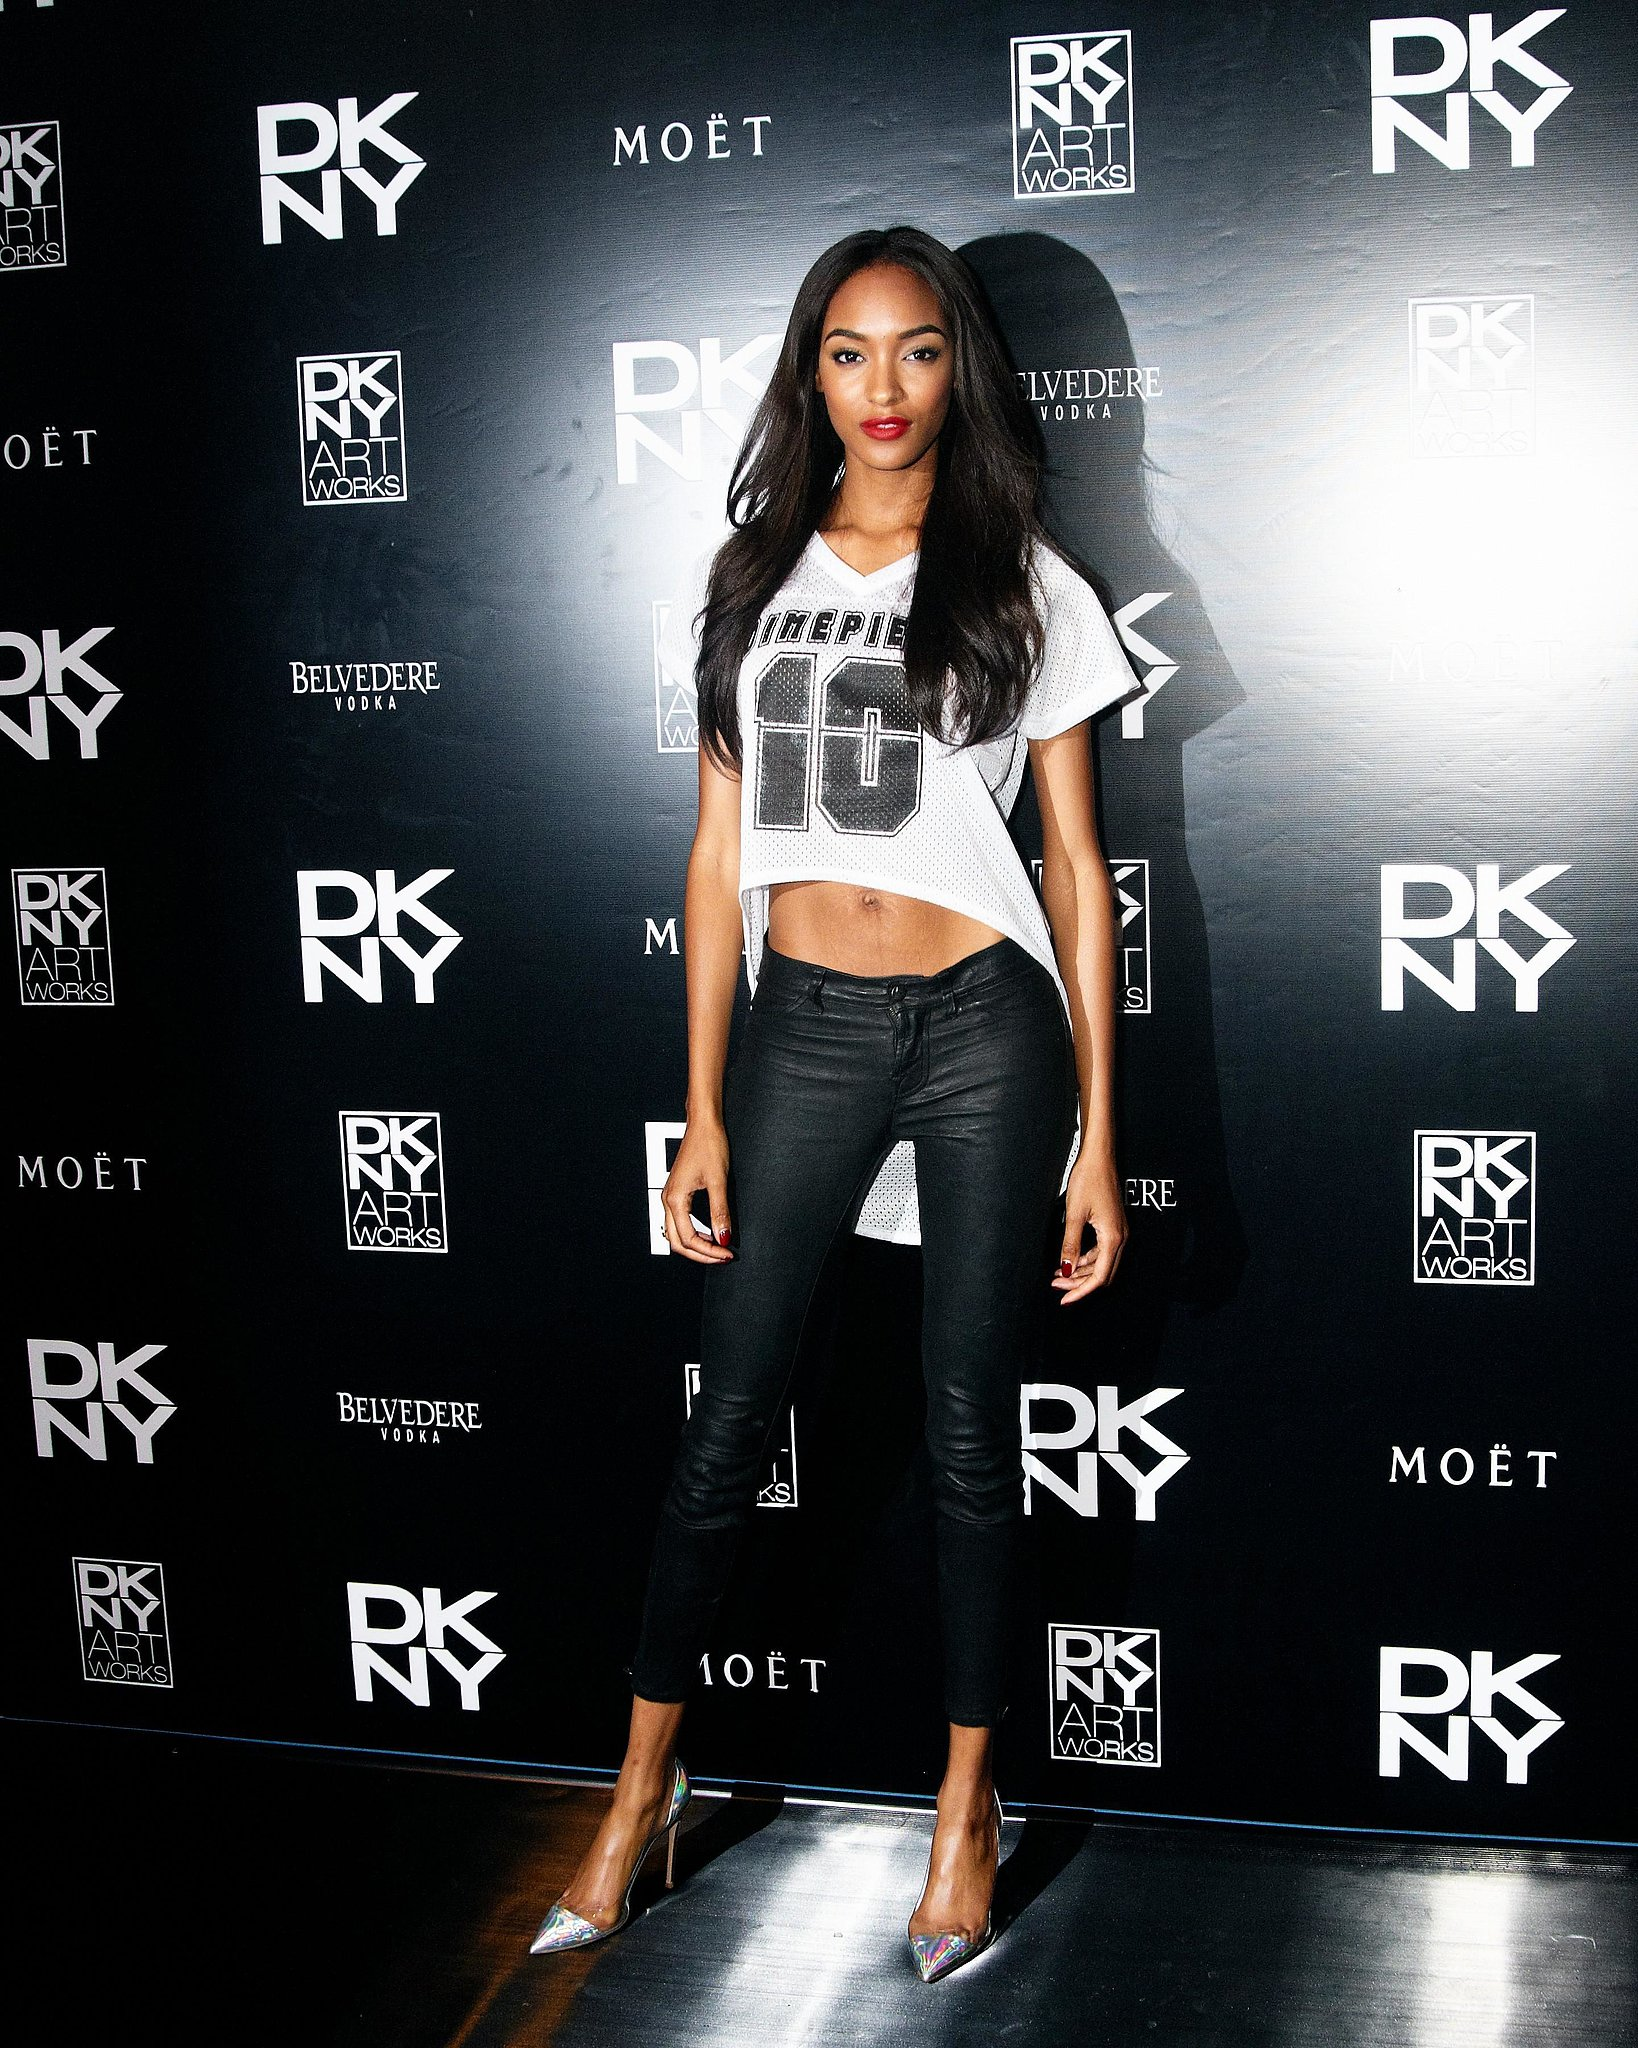 Jourdan Dunn at the launch party for DKNY Artworks in London.